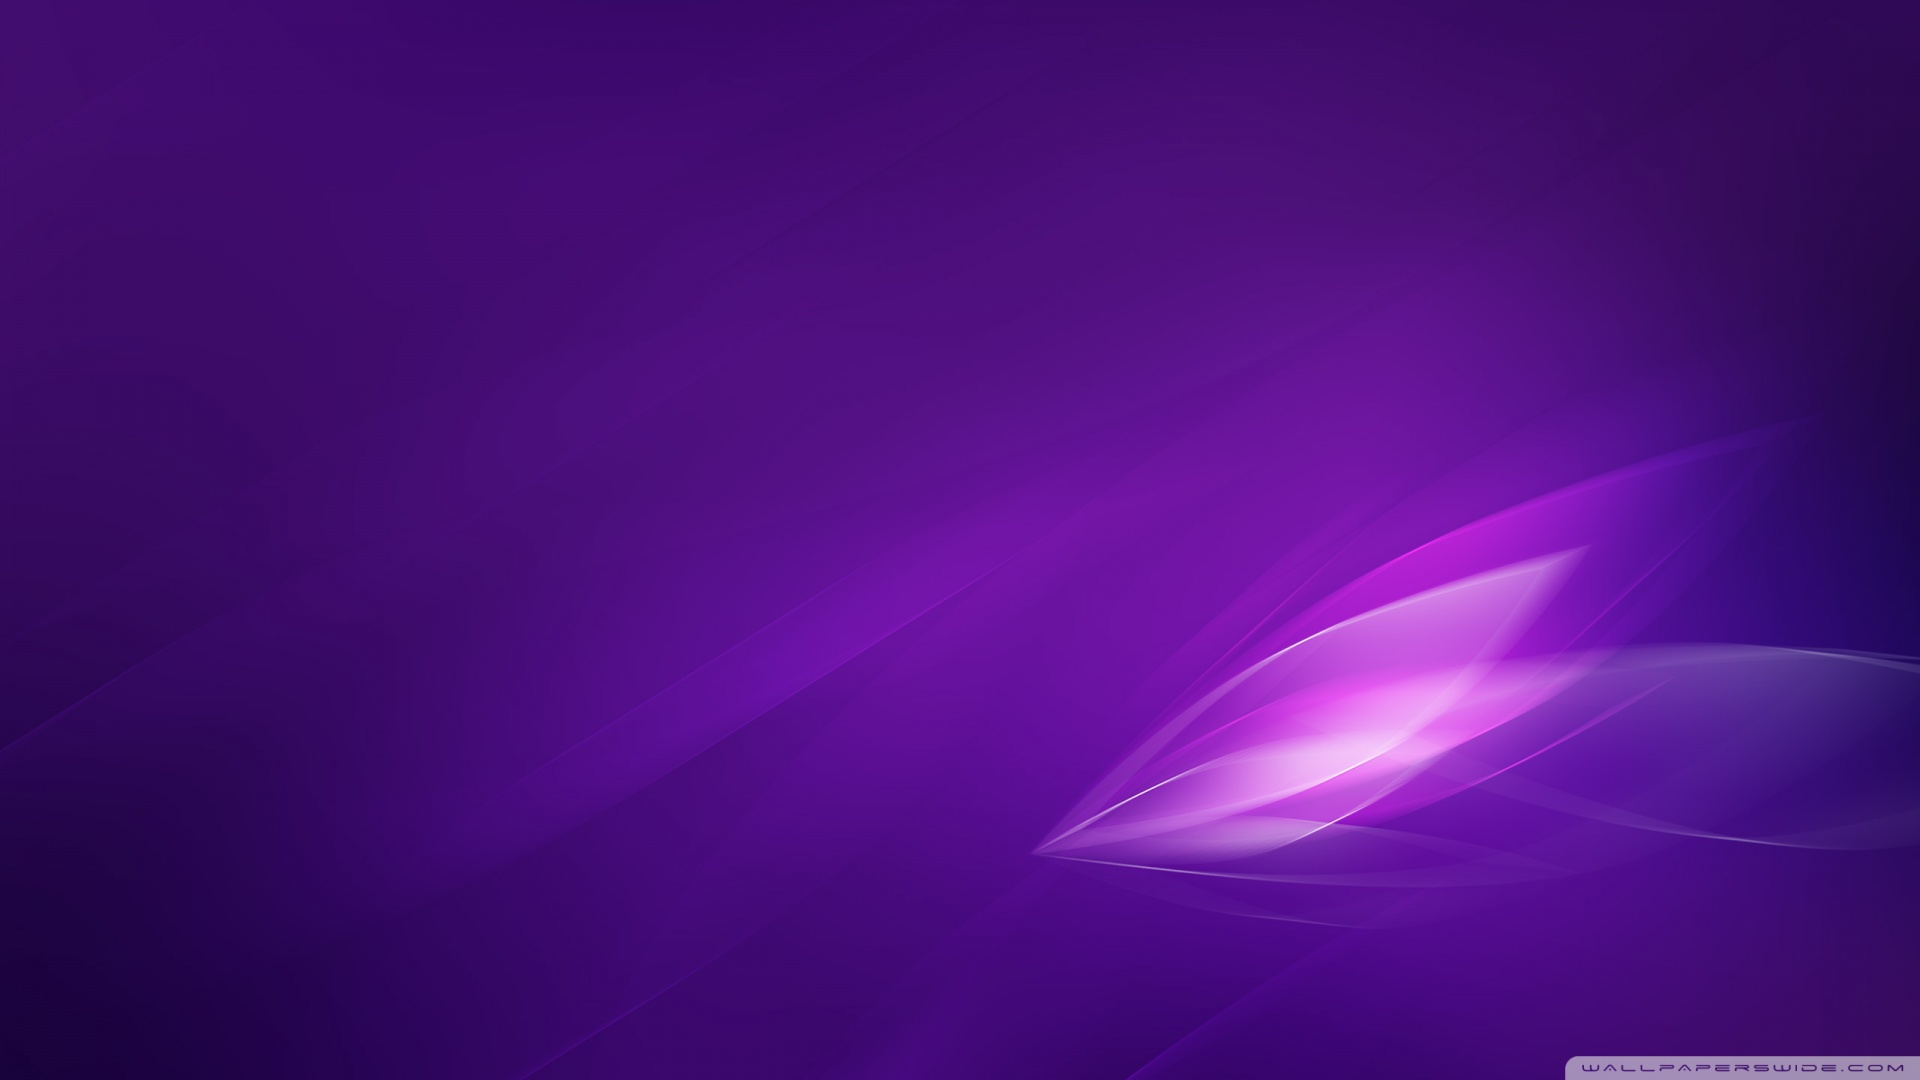 Purple Wallpaper 2966 1920x1080 Px Hdwallsource Com HD Wallpapers Download Free Images Wallpaper [1000image.com]